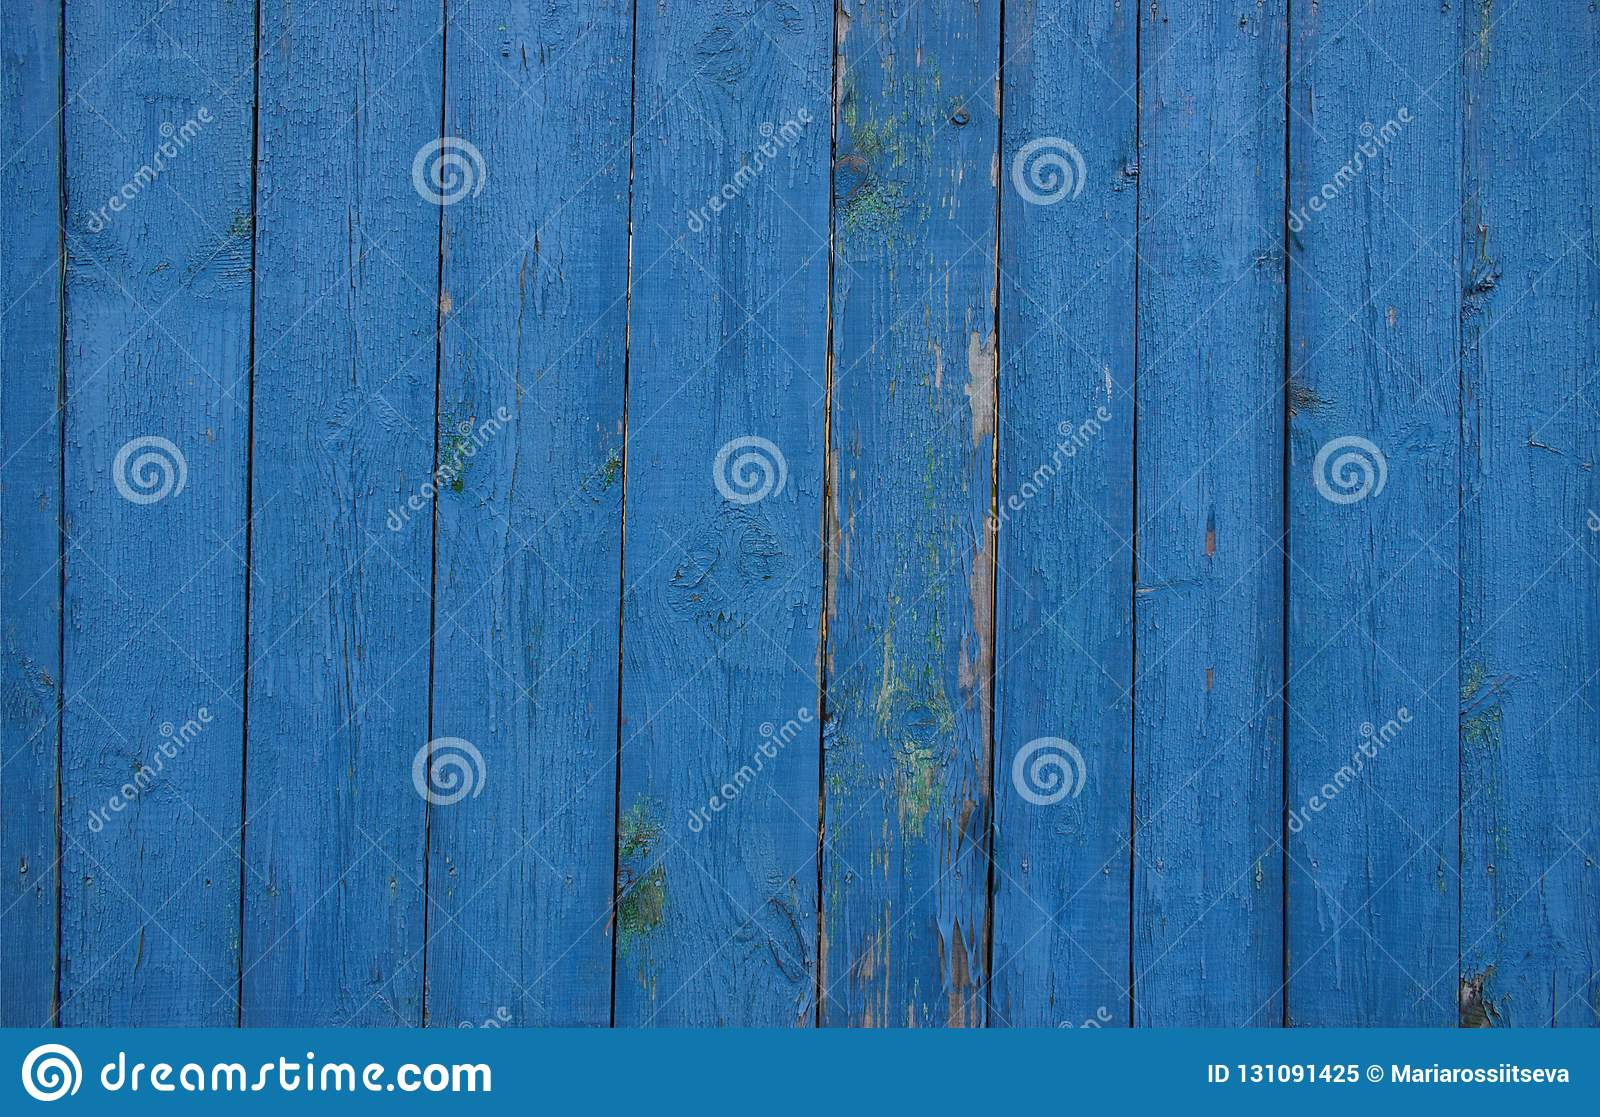 Blue fence of wooden planks.